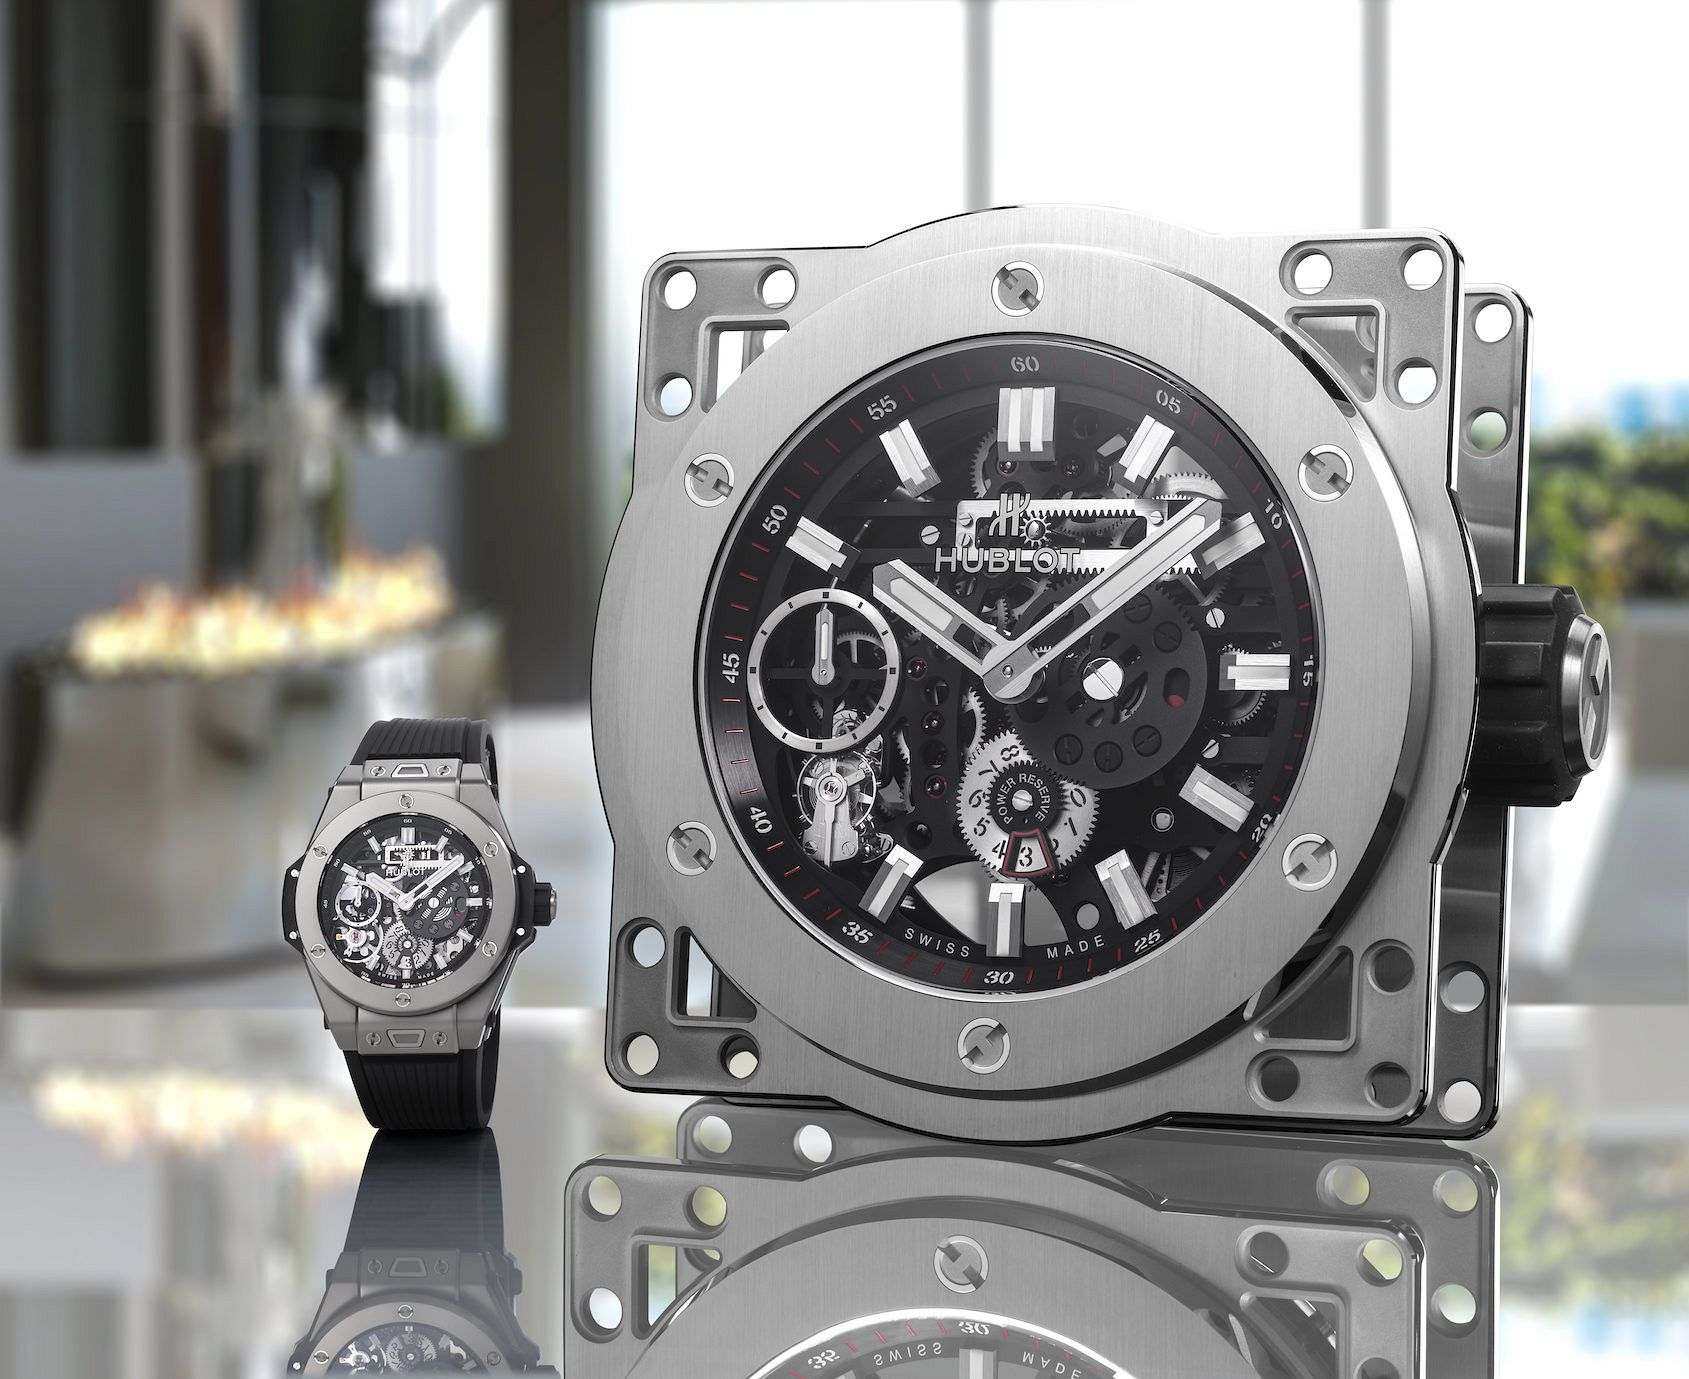 Mass gains! Hublot are peak 2020 as they release a mechanical desk clock FOUR TIMES the size of the Meca-10 model